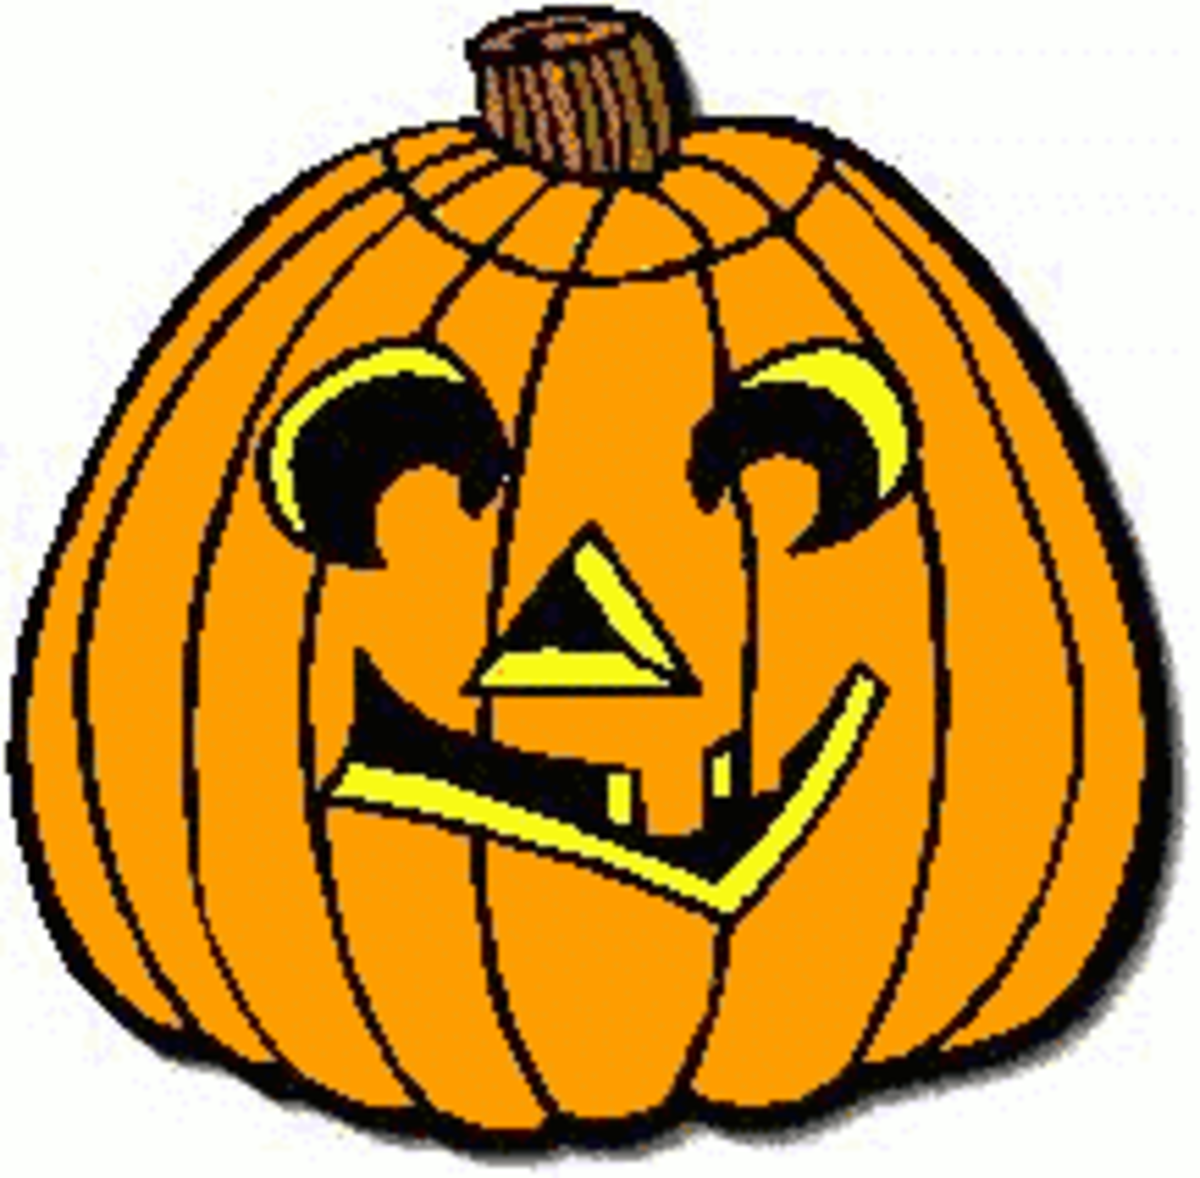 Free Pumpkin Clipart Image